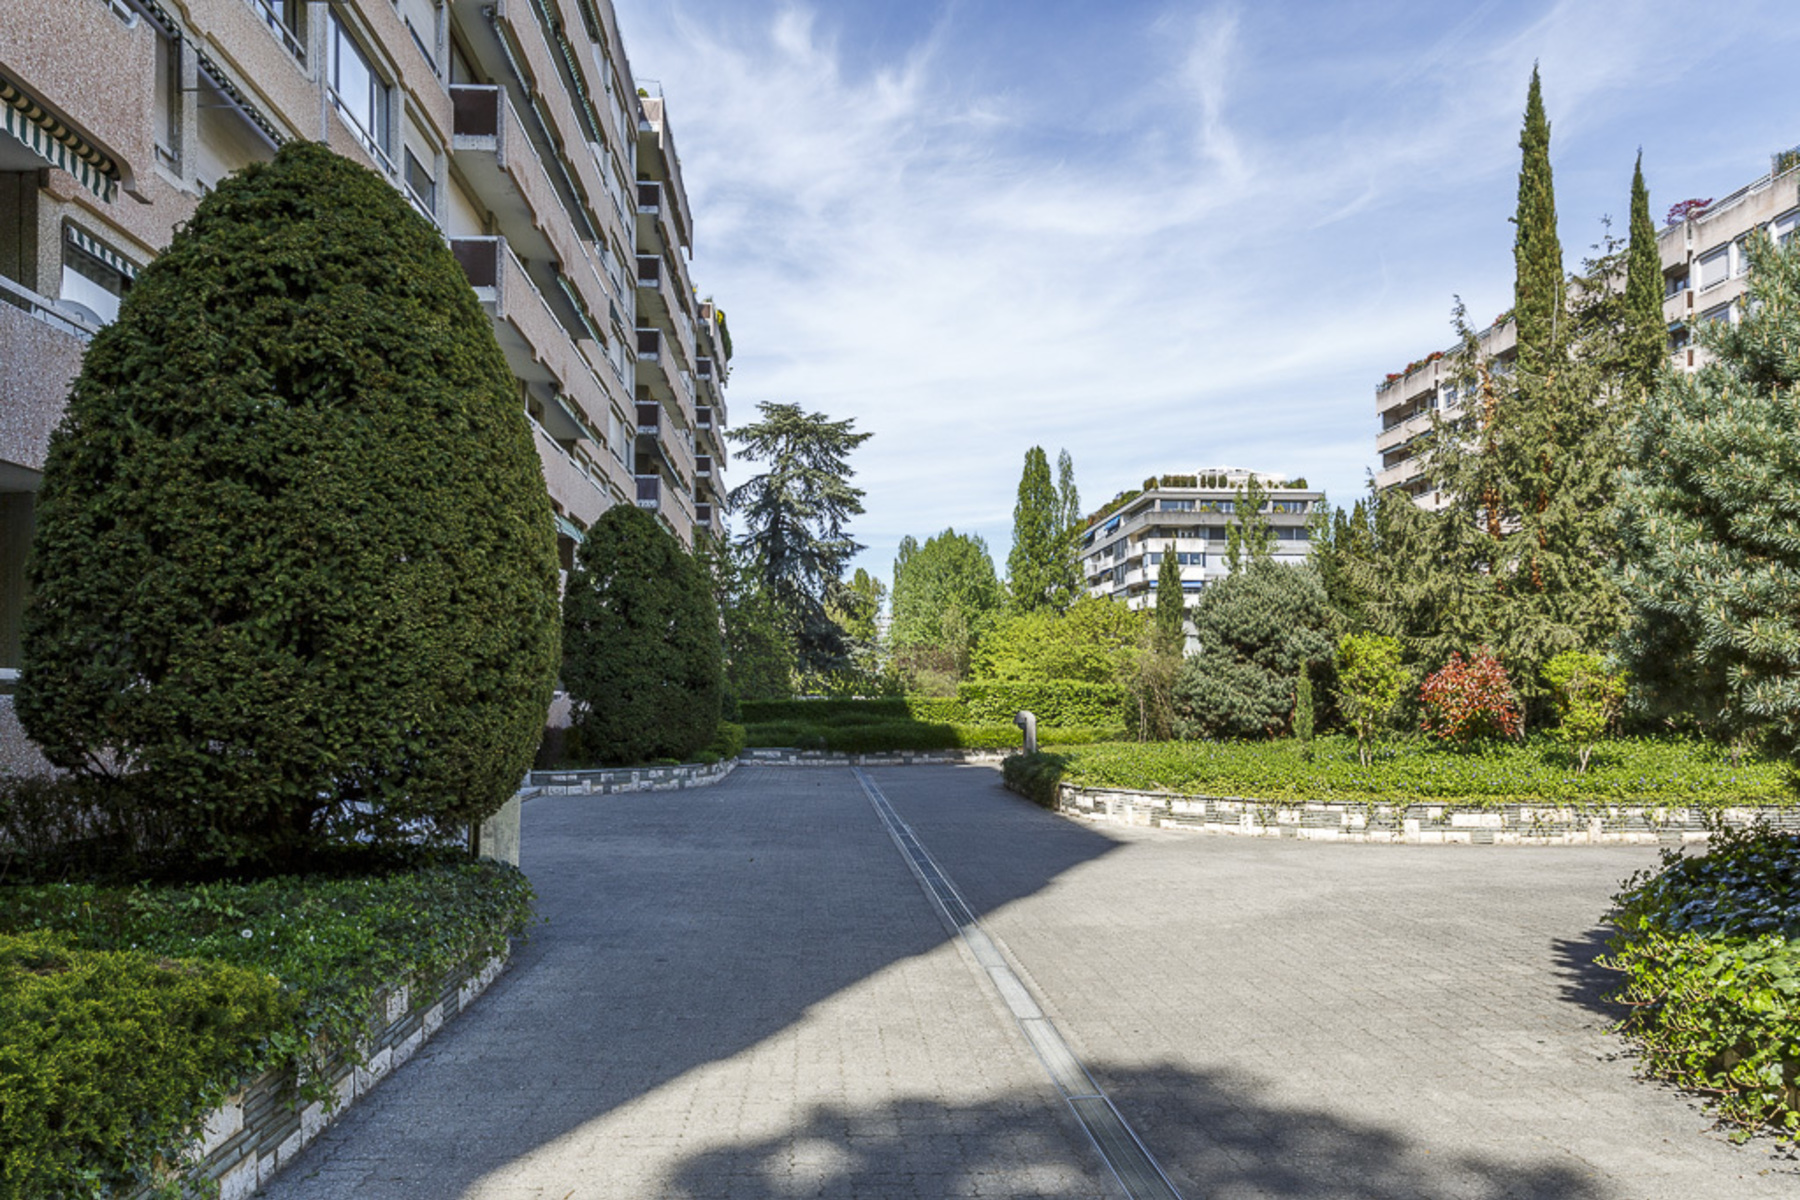 Квартира для того Продажа на Beautiful 4 room apartment in the exclusive Florissant neighbourhood. Genève, Geneva, Жене́ва, 1206 Швейцария